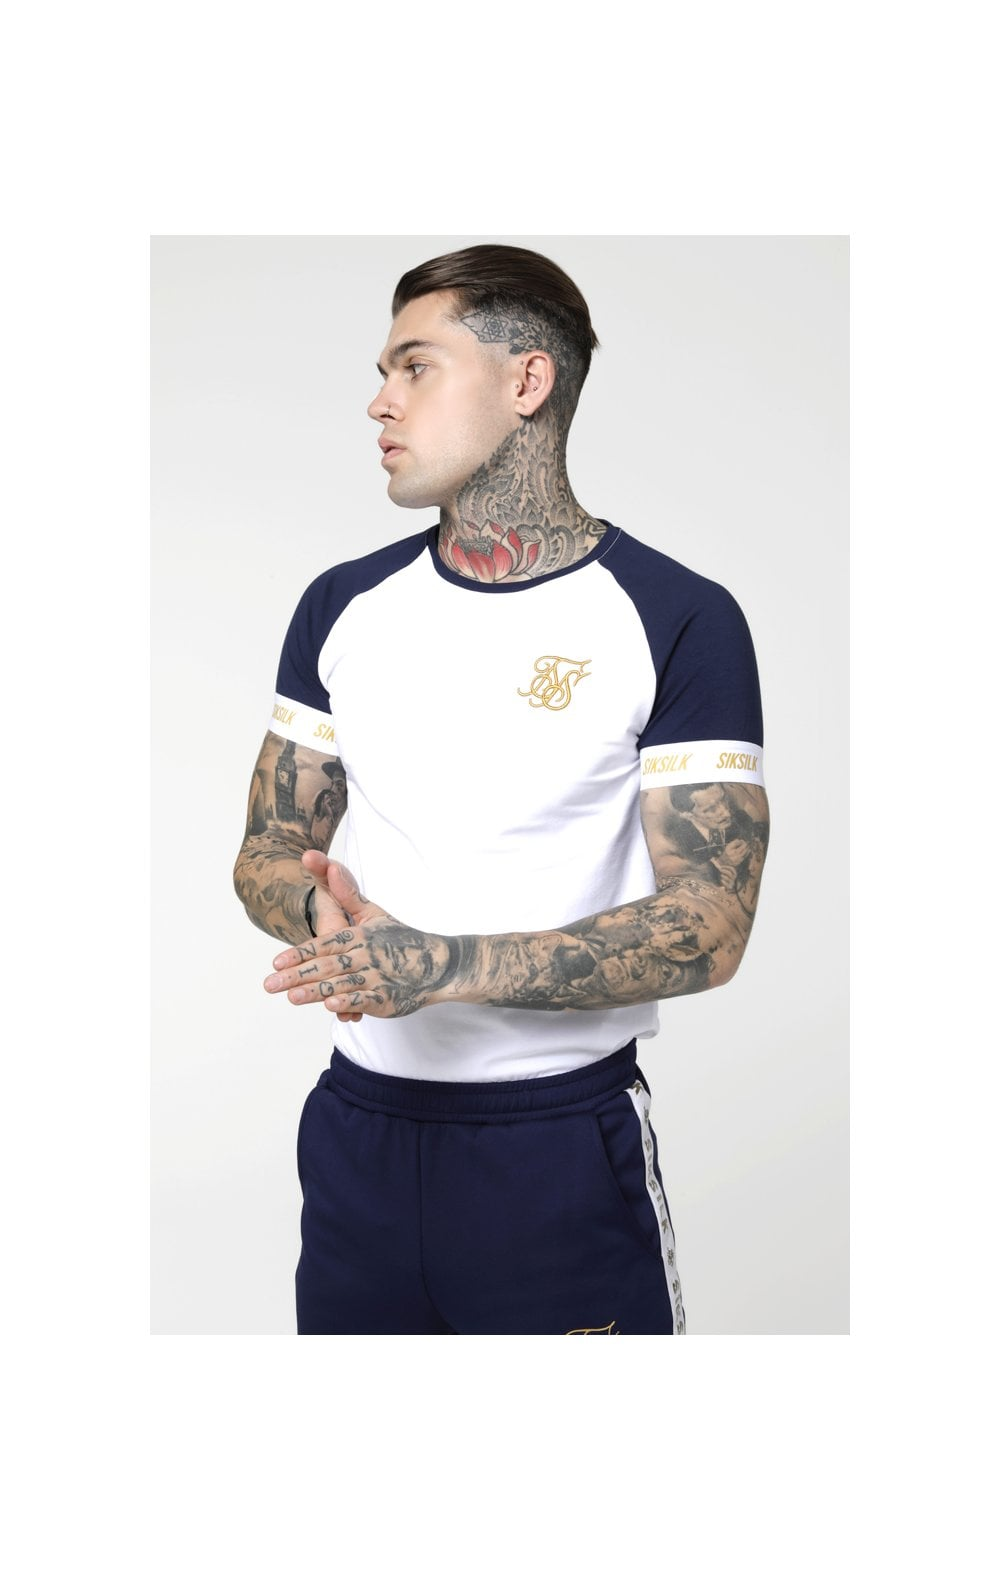 SikSilk S/S Tech Tee - Navy, White & Gold